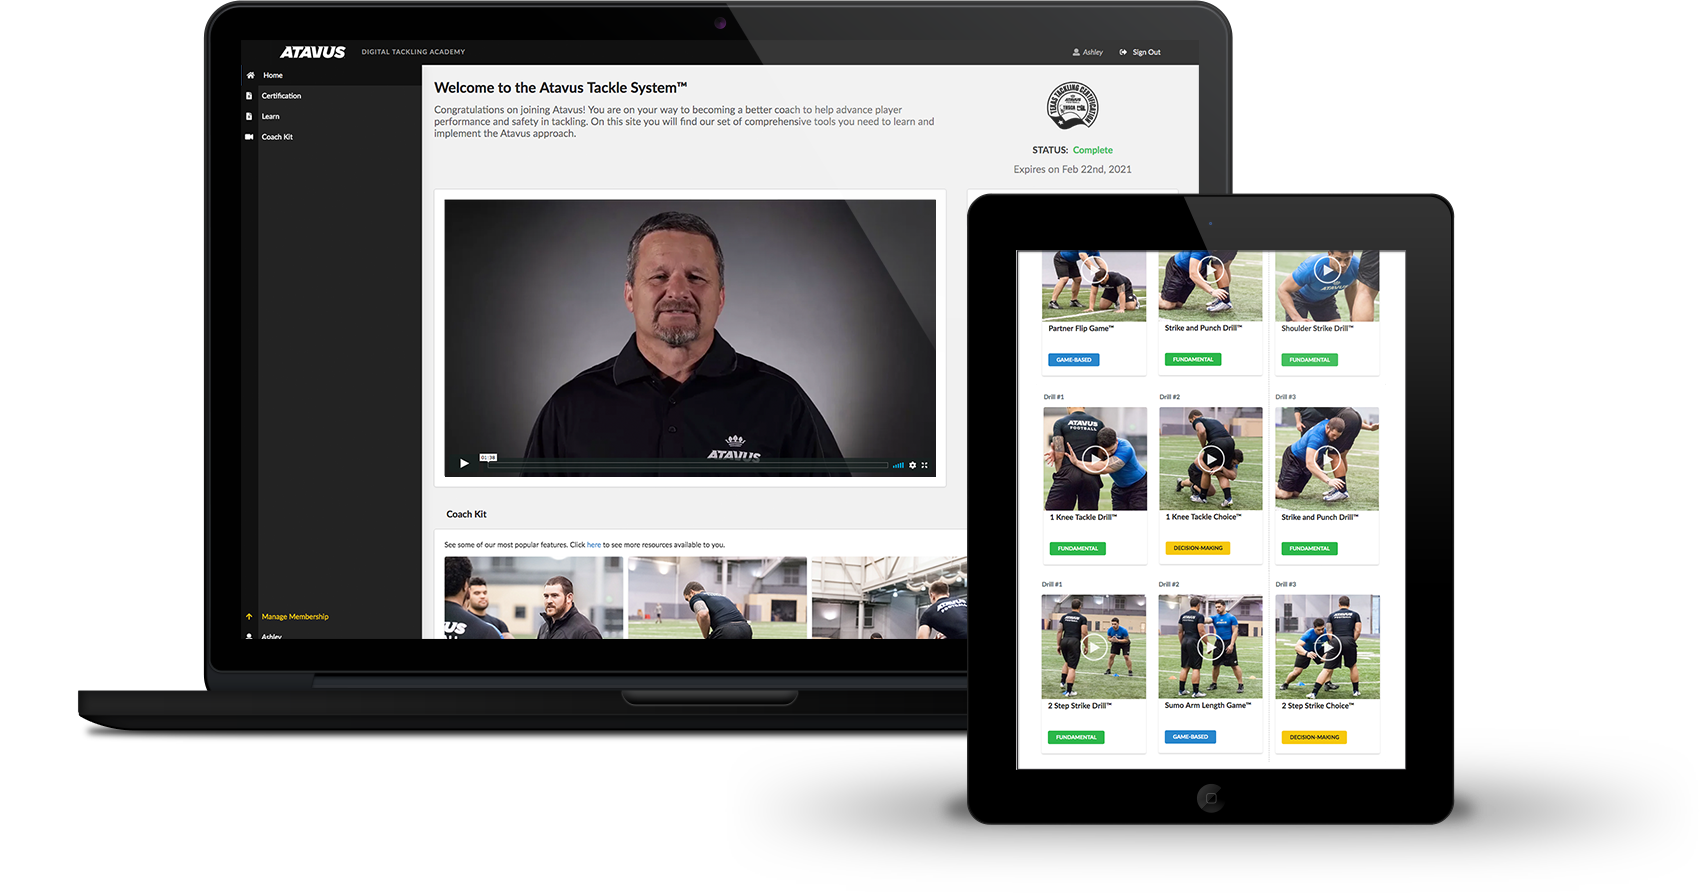 Atavus offers coaches the tools they need to improve tackling.